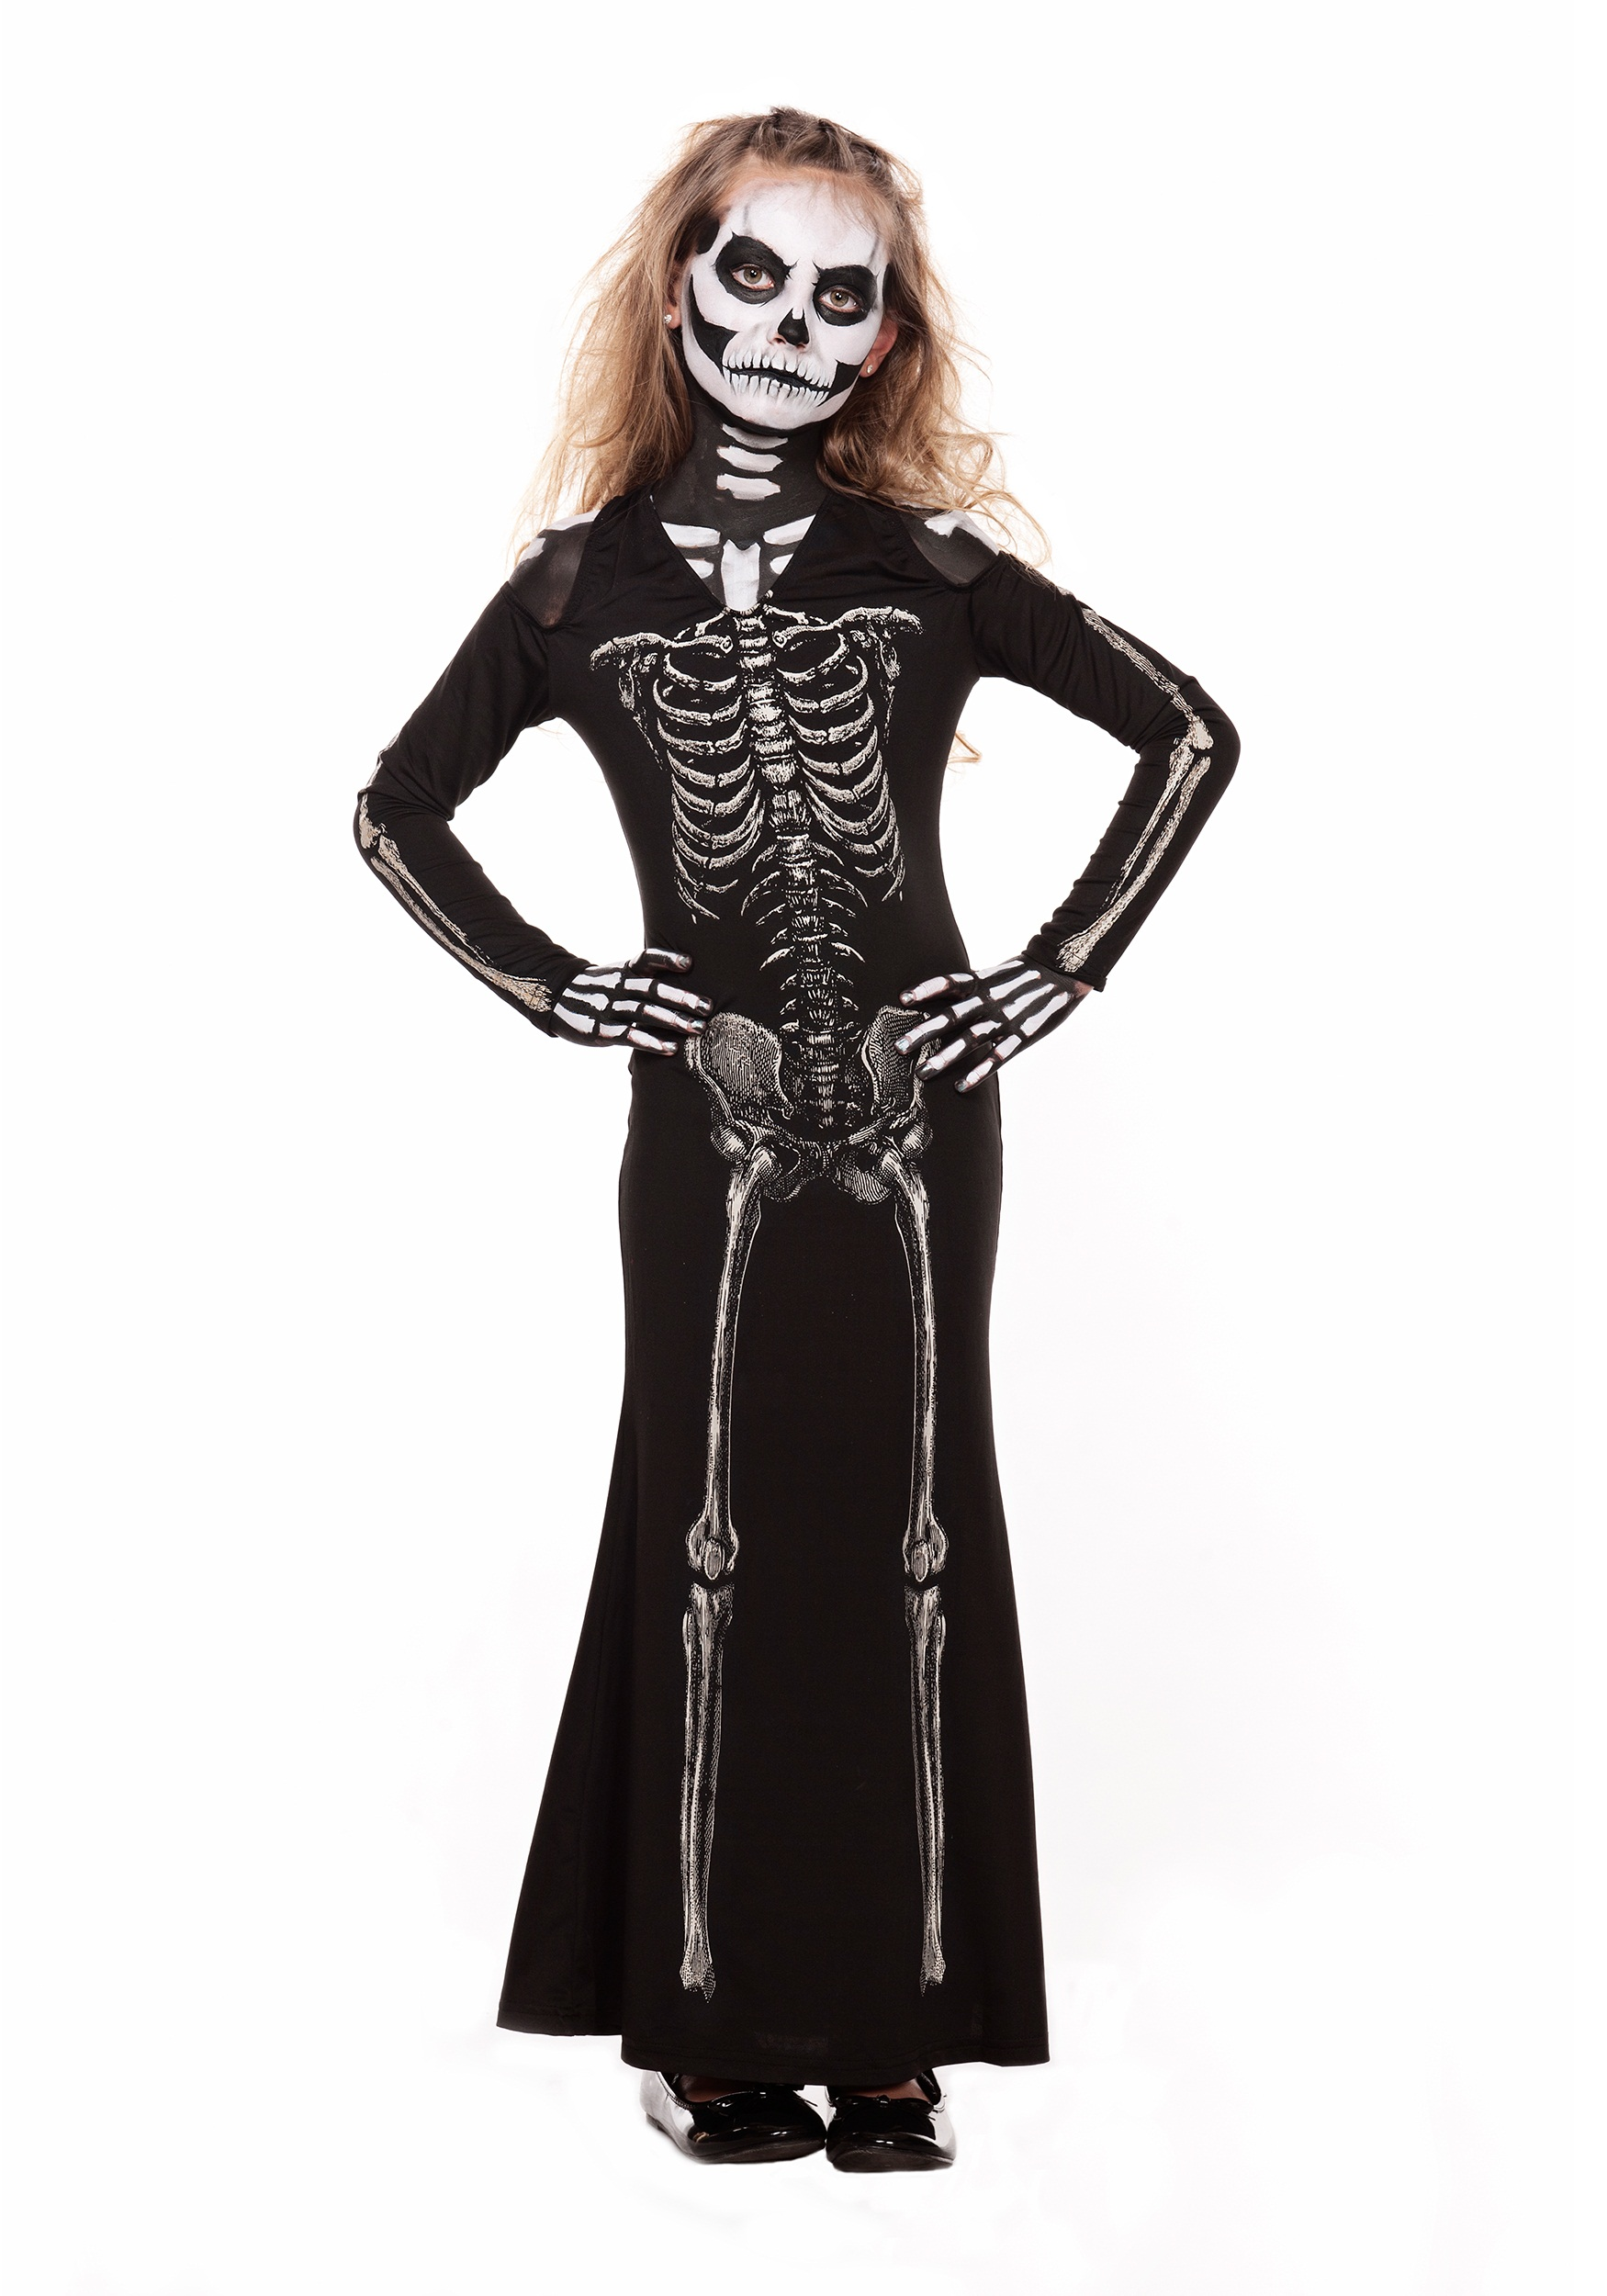 INOpets.com Anything for Pets Parents & Their Pets Girl's Skeleton Sweetie Maxi Dress Costume